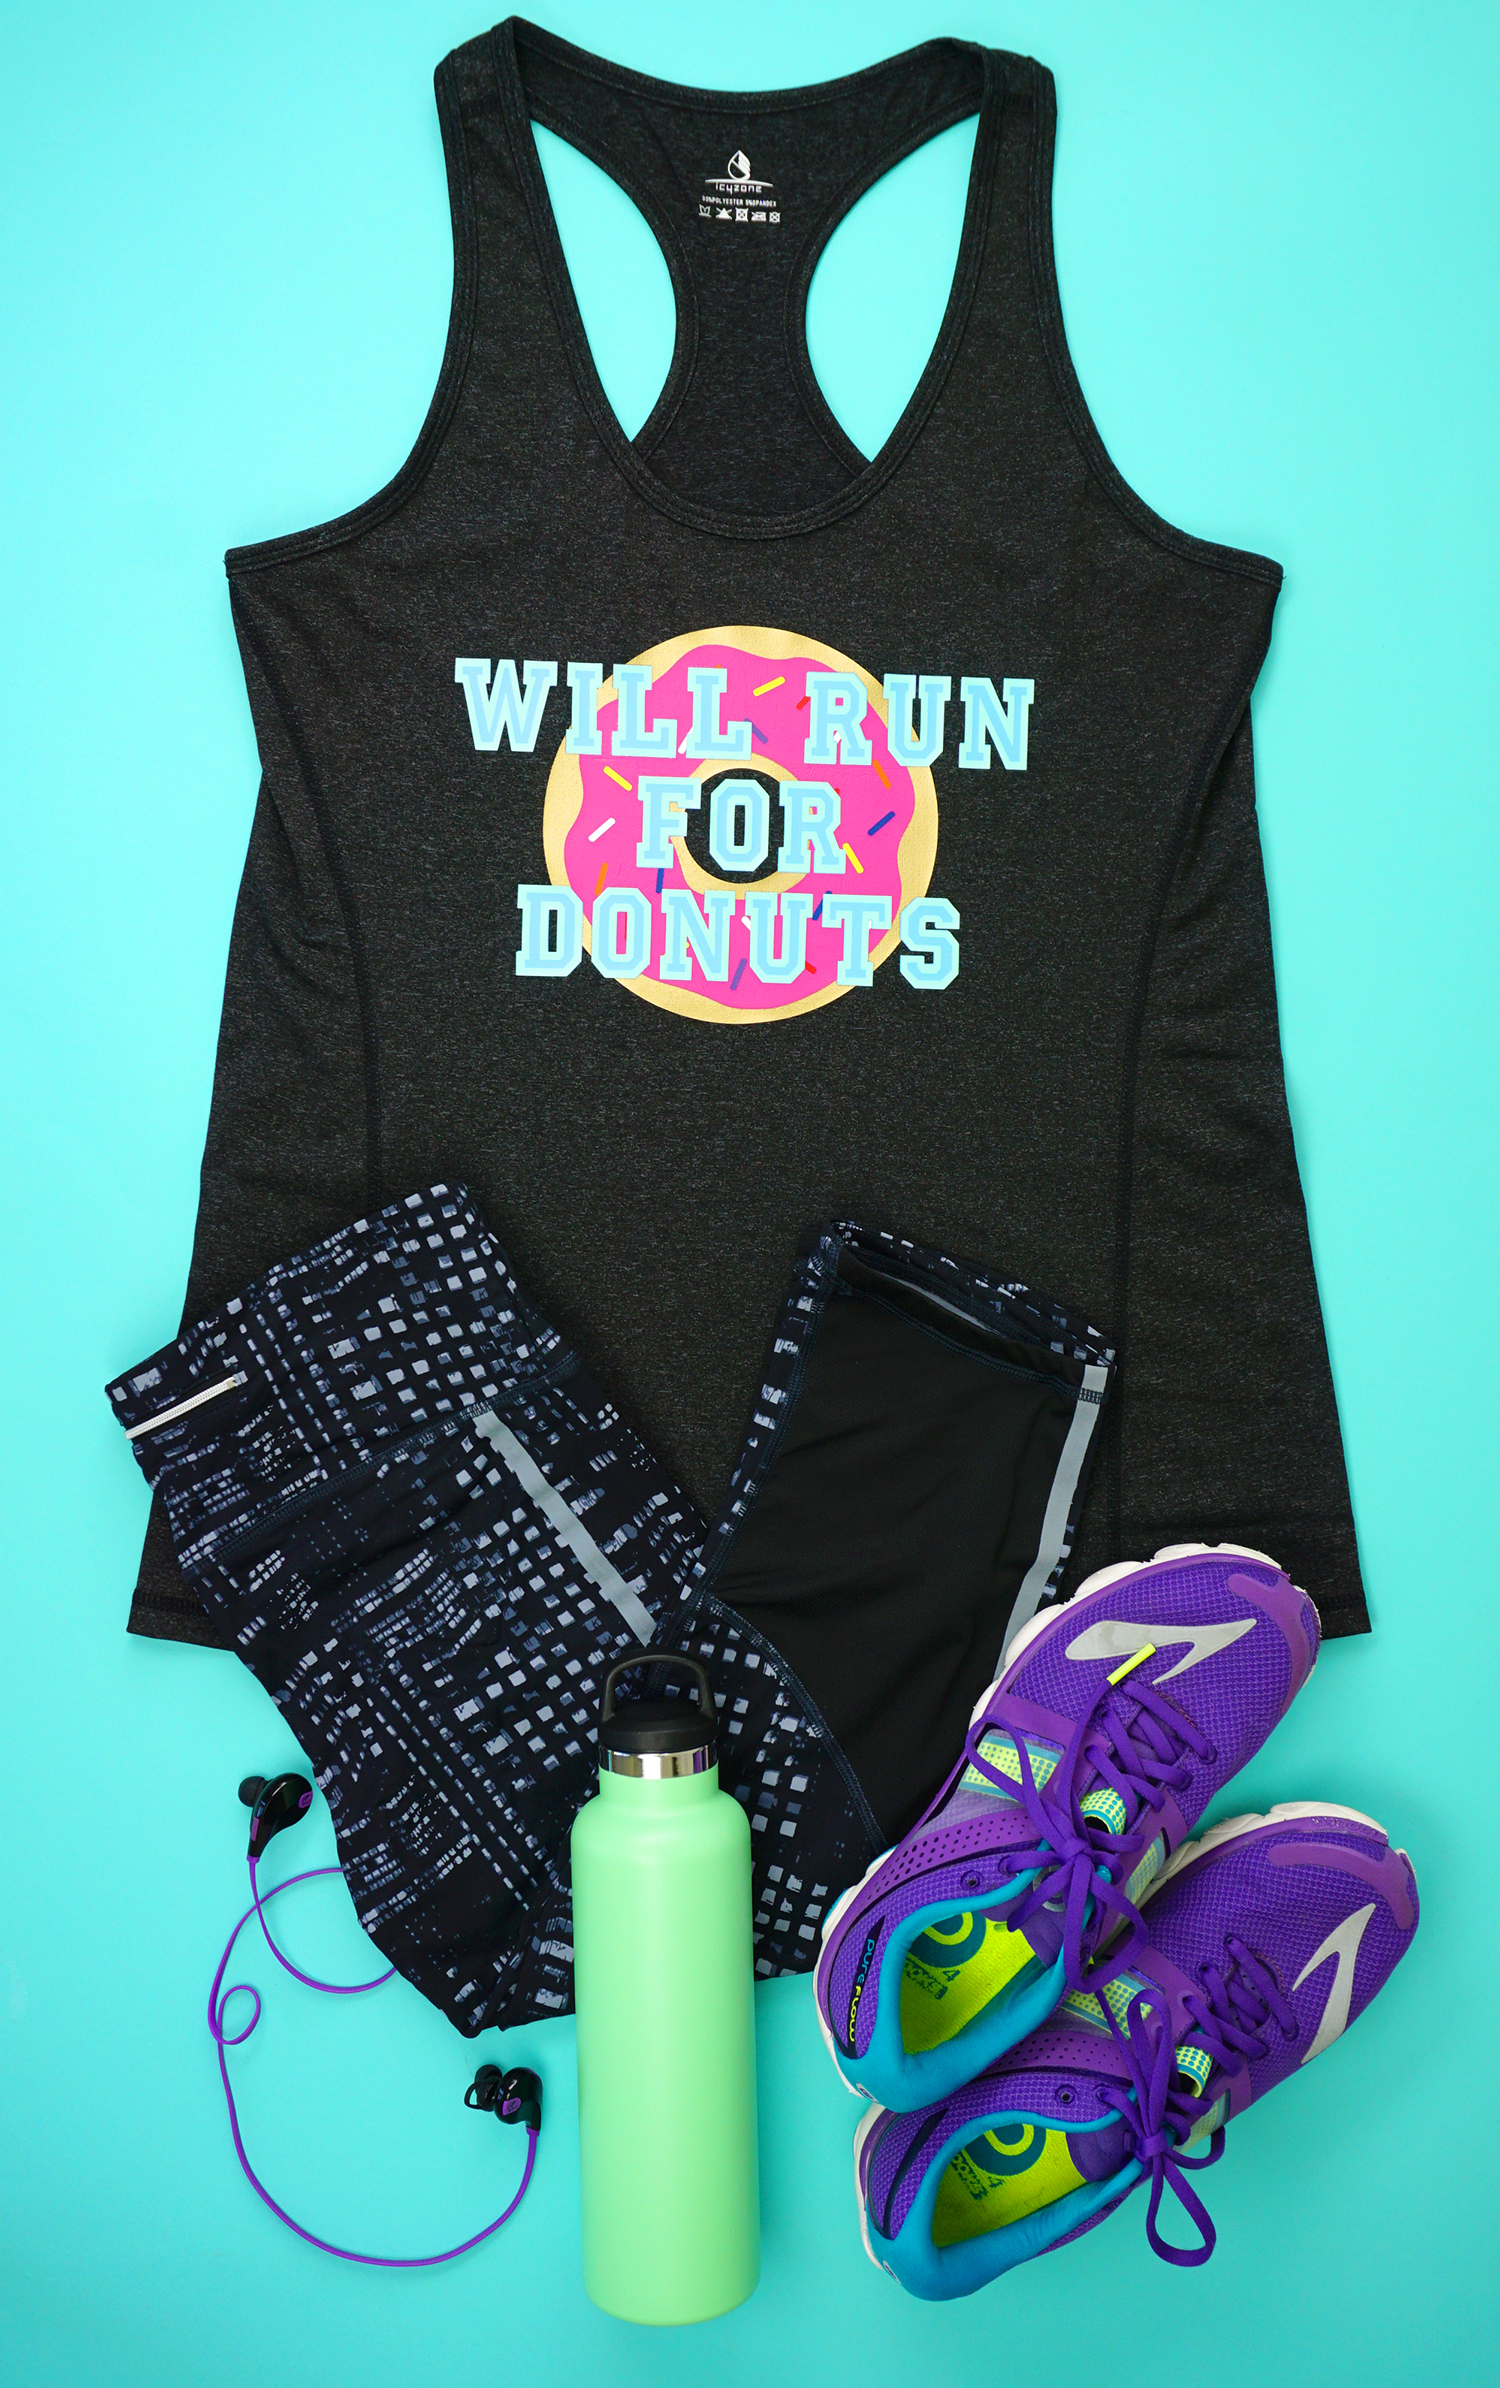 Funny Workout Shirt Quot Will Run For Donuts Quot With Cricut